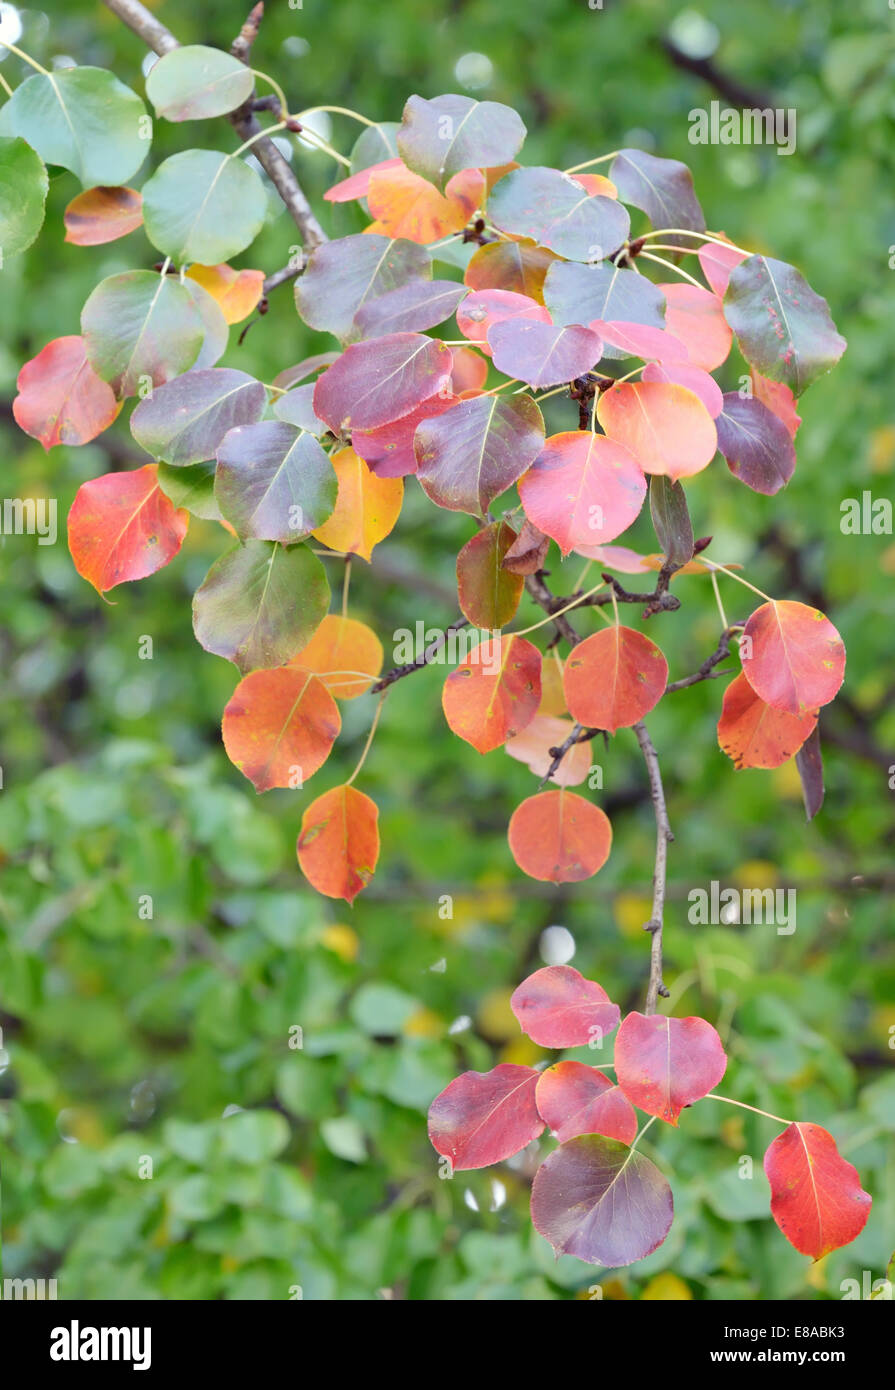 red, yellow and orange autumn leaves of pear trees;isolated branch - Stock Image